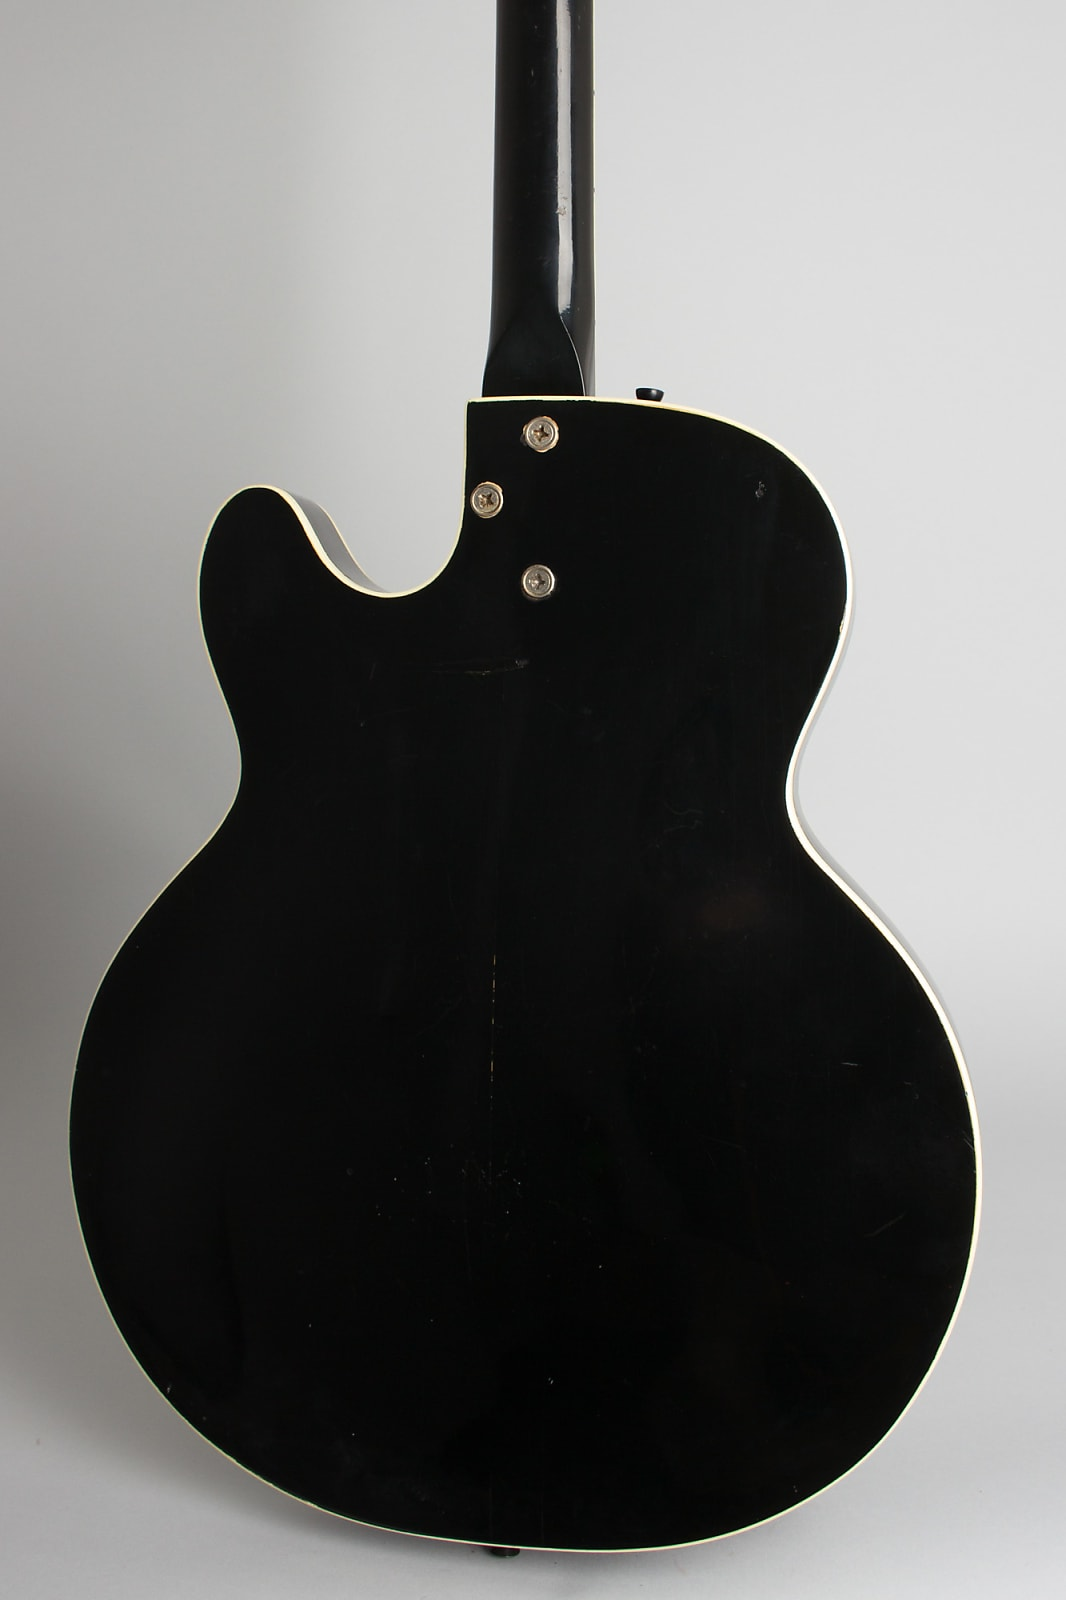 Silvertone Model 1446L Thinline Hollow Body Electric Guitar, made by Harmony (1960's), black gig bag case.